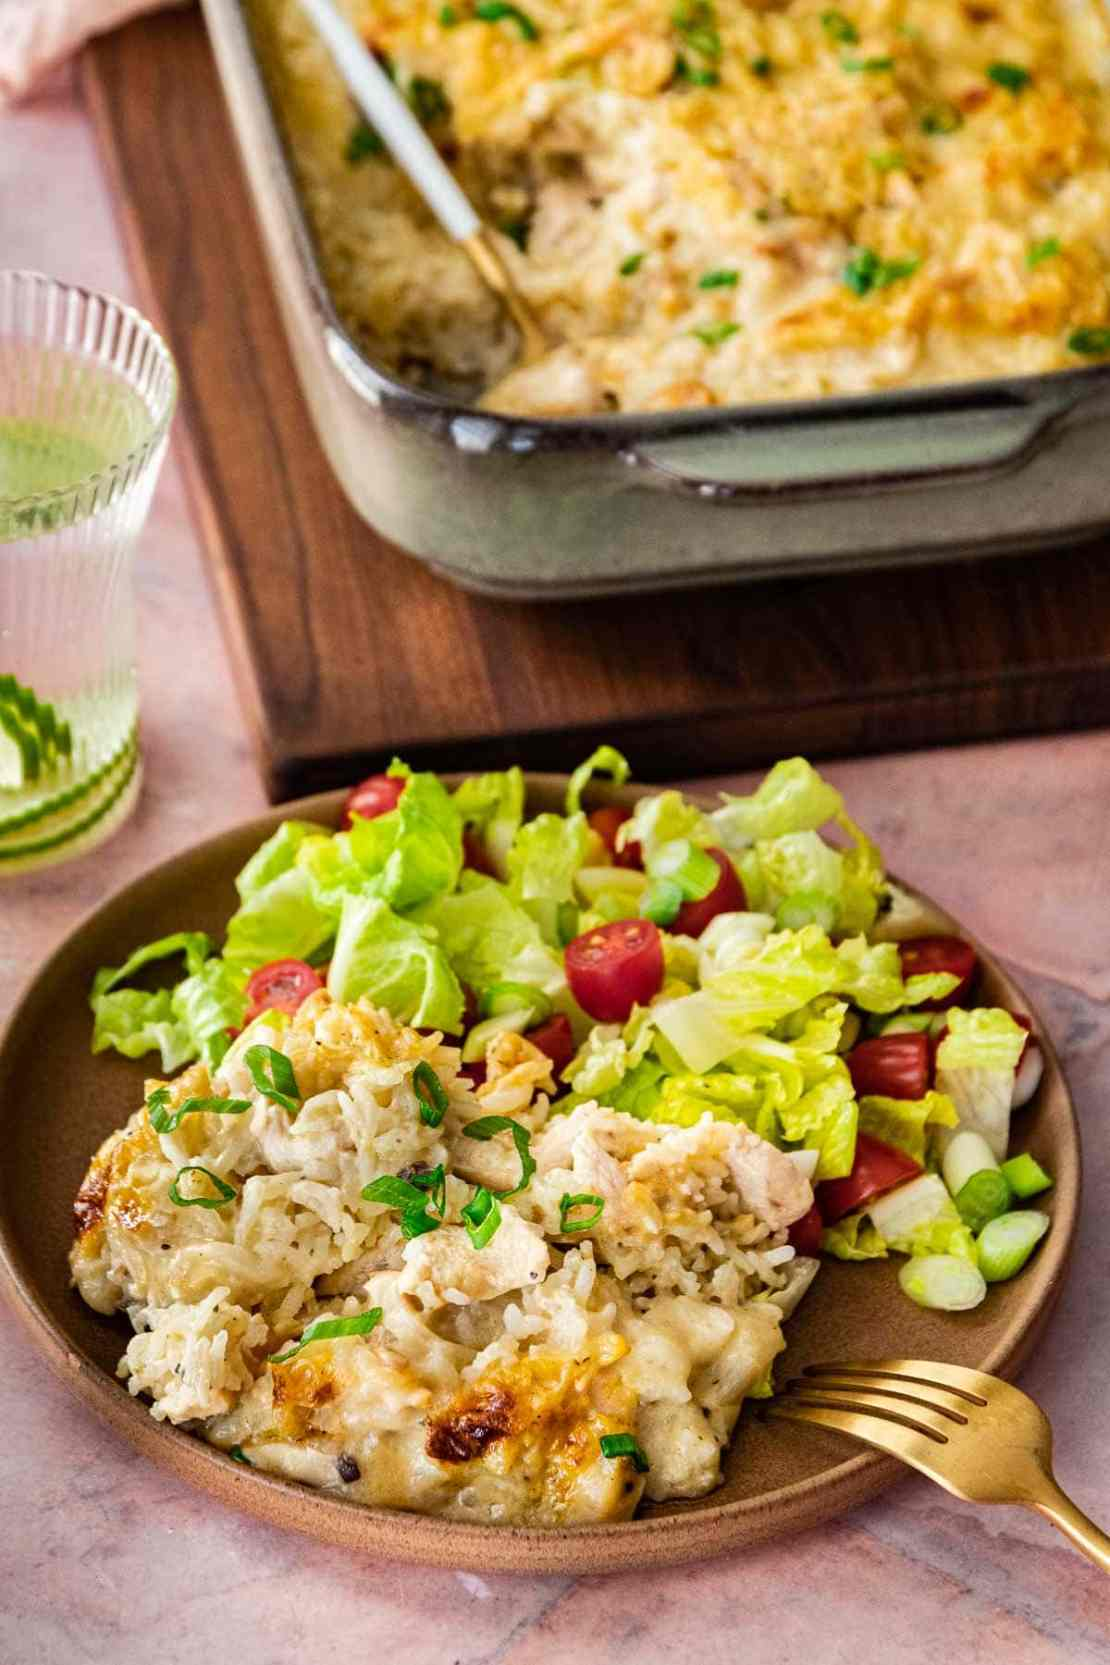 Chicken and Rice Casserole on dinner plate with salad